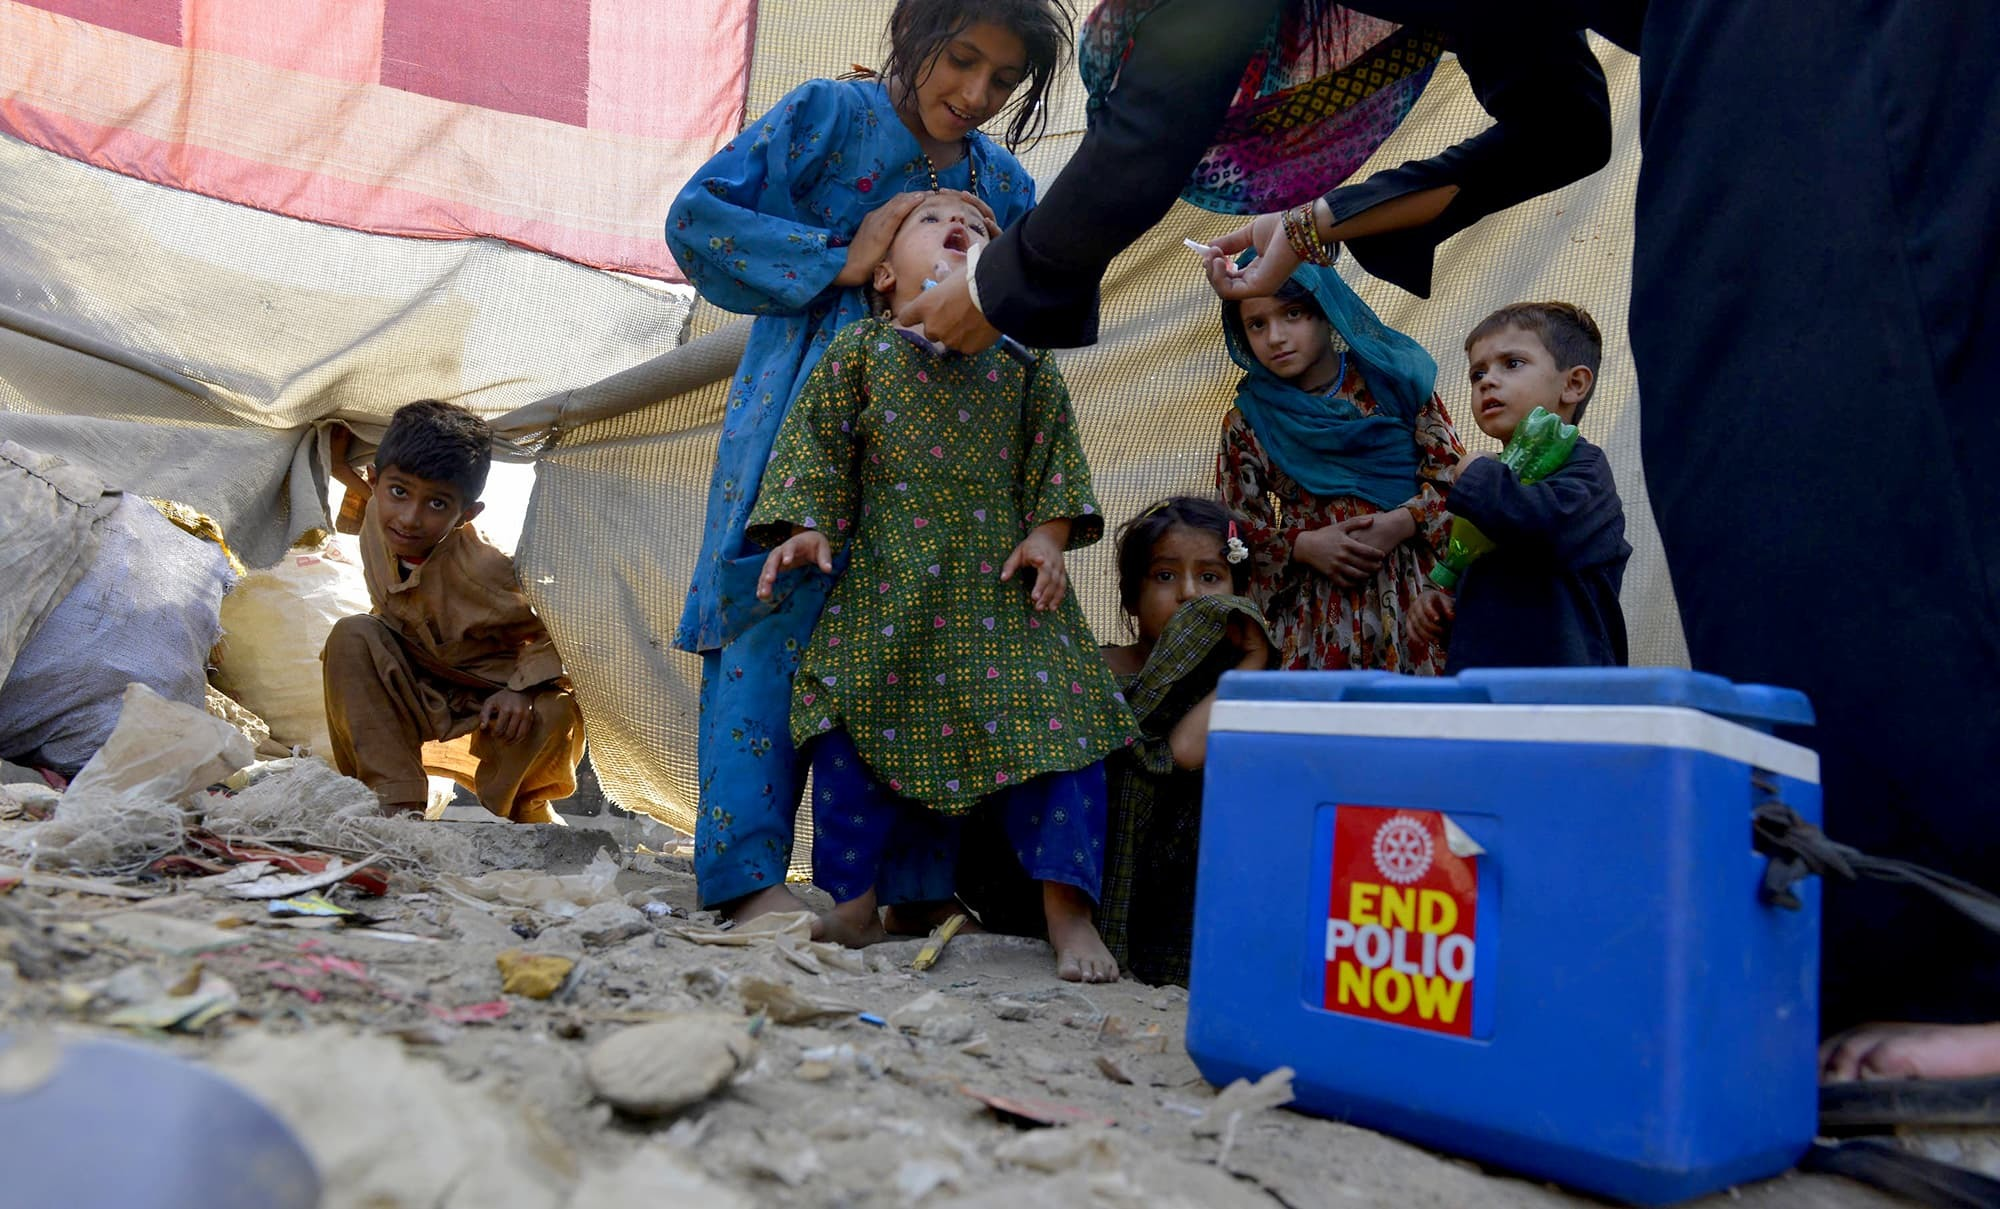 Five new cases of polio have brought the total number up to 58 this year. — AFP/File